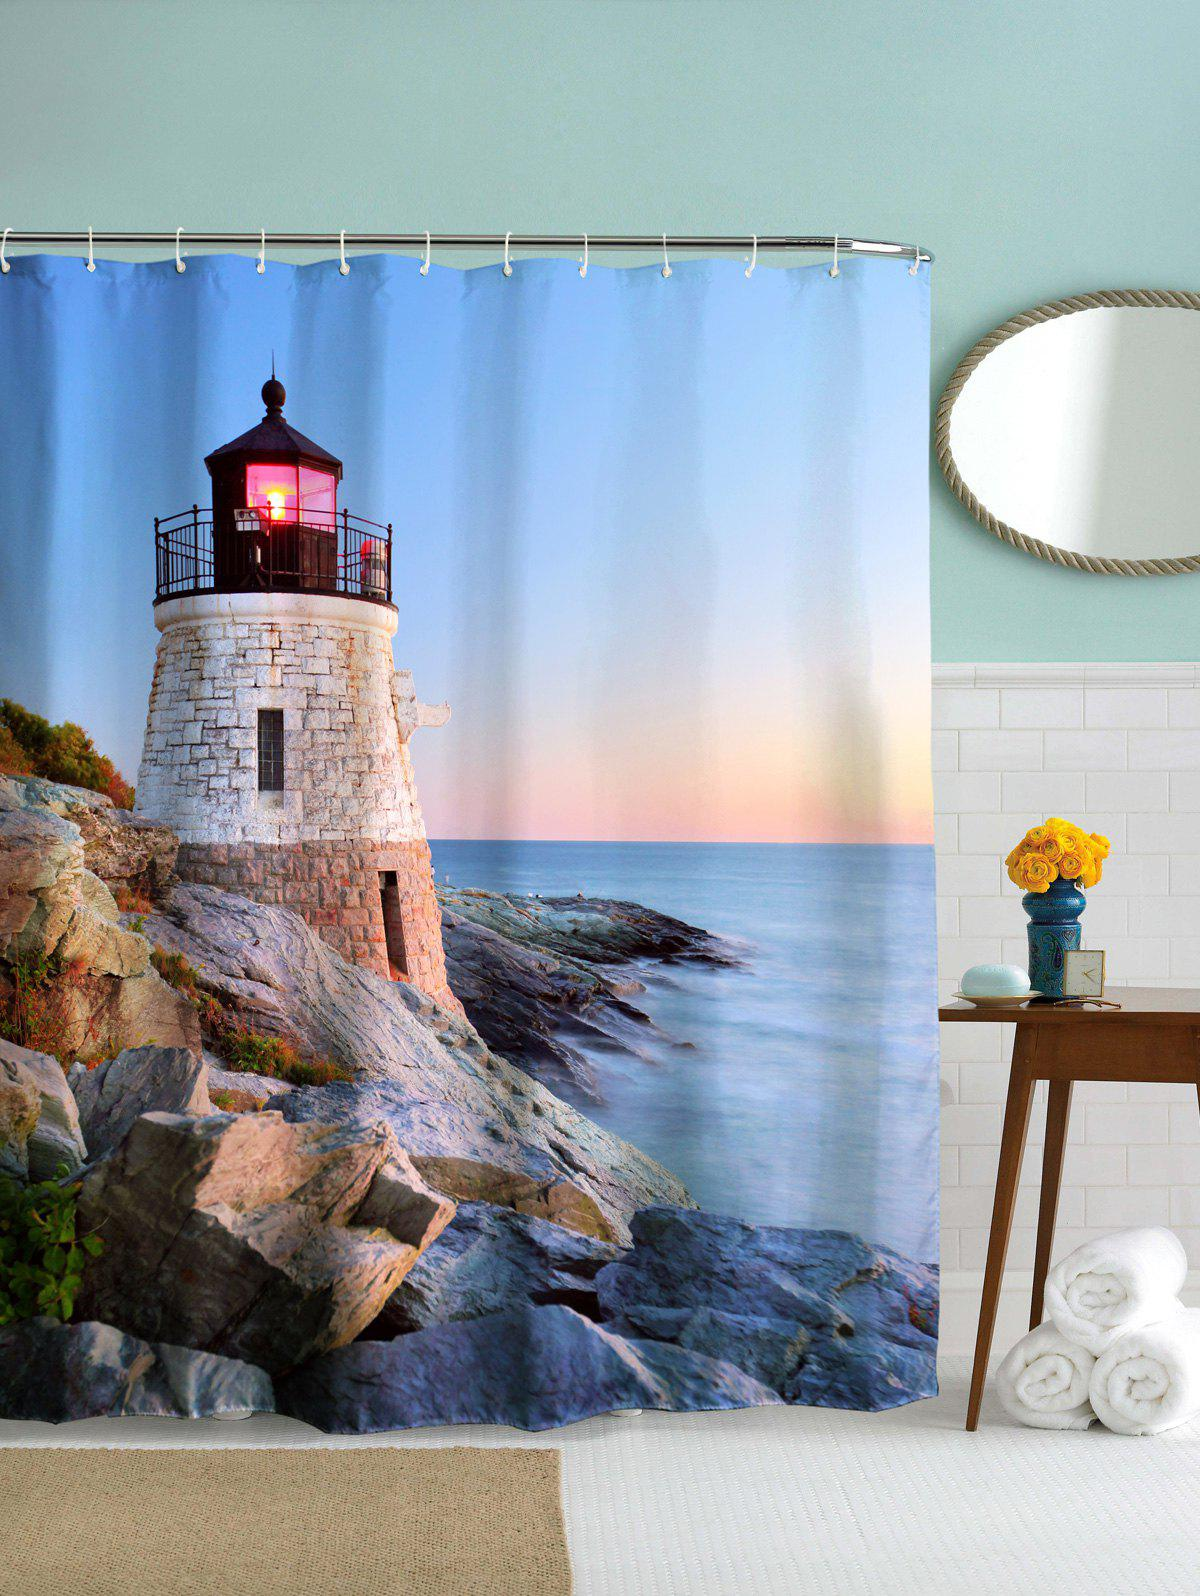 Waterproof Fabric Sea Lighthouse Scenery Bath Shower Curtain - MEDIUM BLUE 180CM*180CM